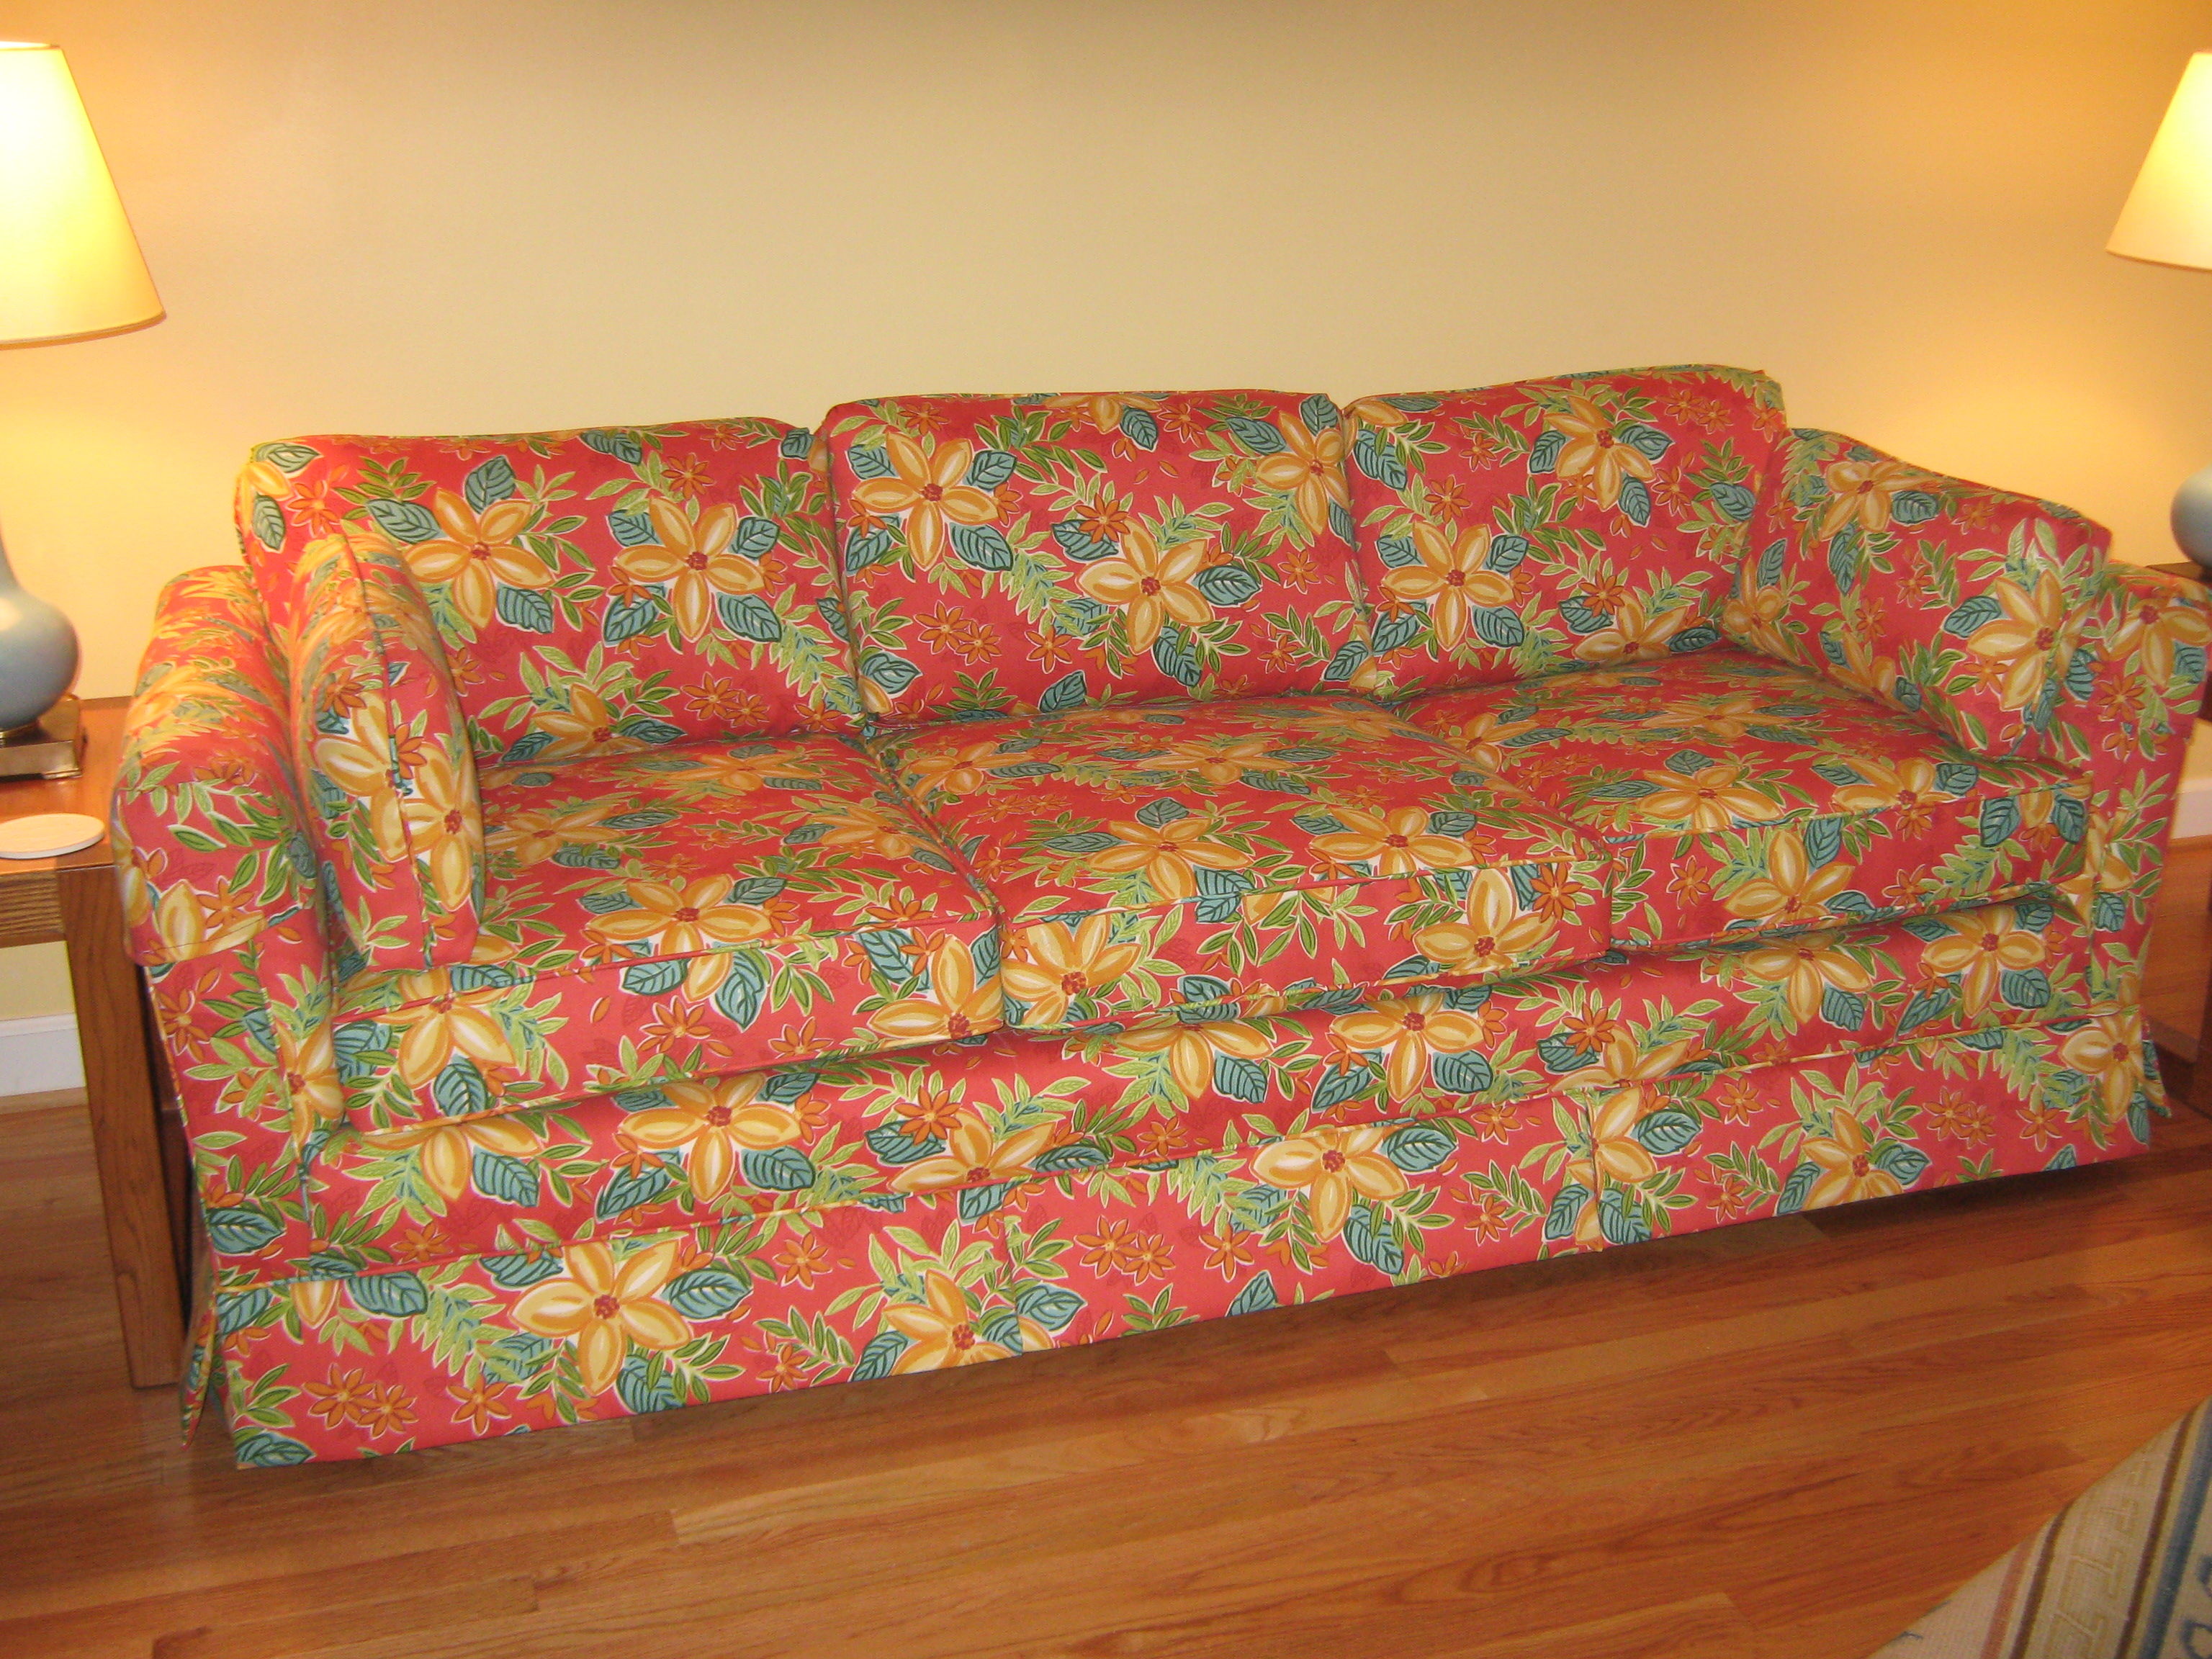 Furniture Sales Raleigh Nc Jimmy Cooper Upholstery - Gallery